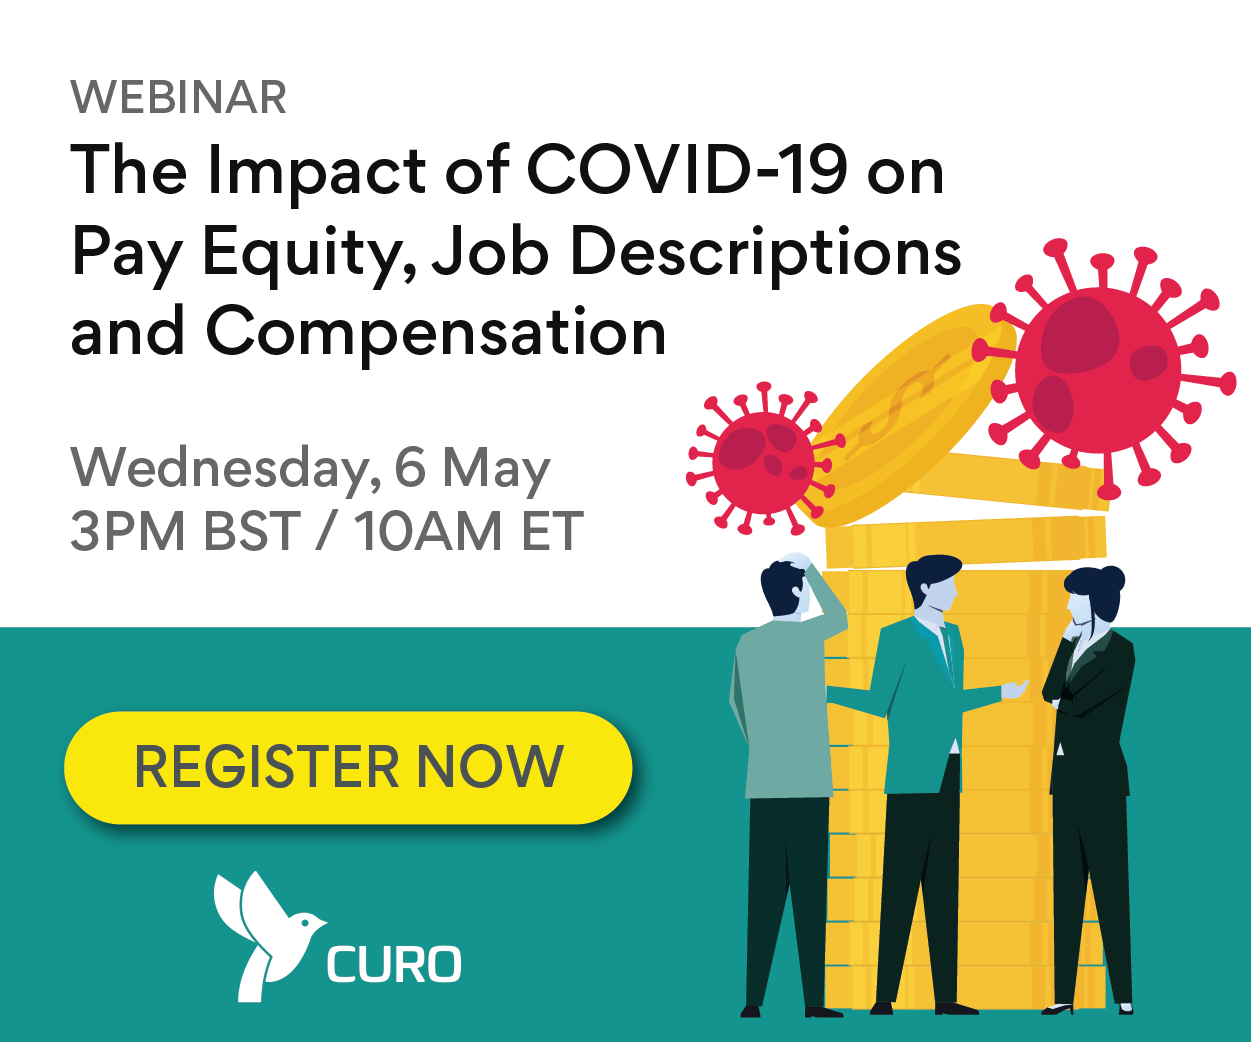 The Impact of COVID-19 on Pay Equity, Job Descriptions and Compensation